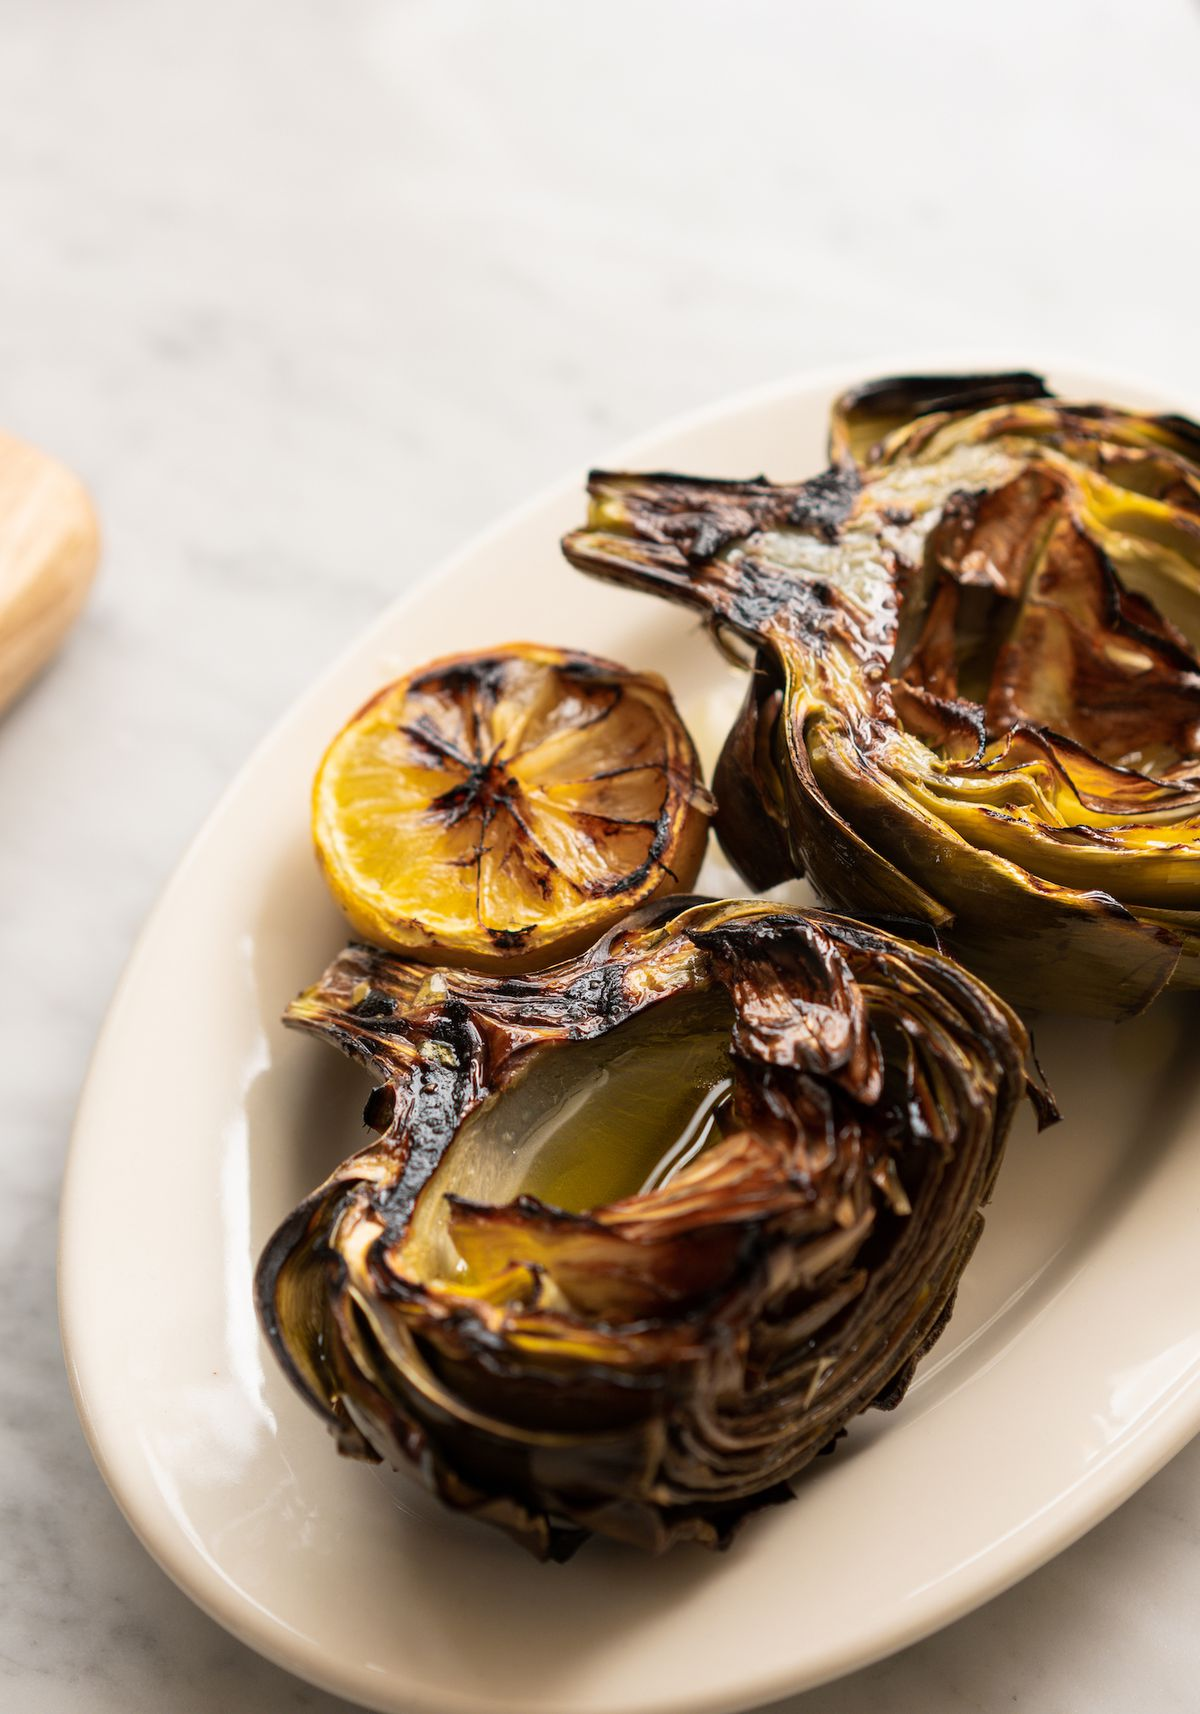 An oval plate of grilled artichokes with lemon on the side.